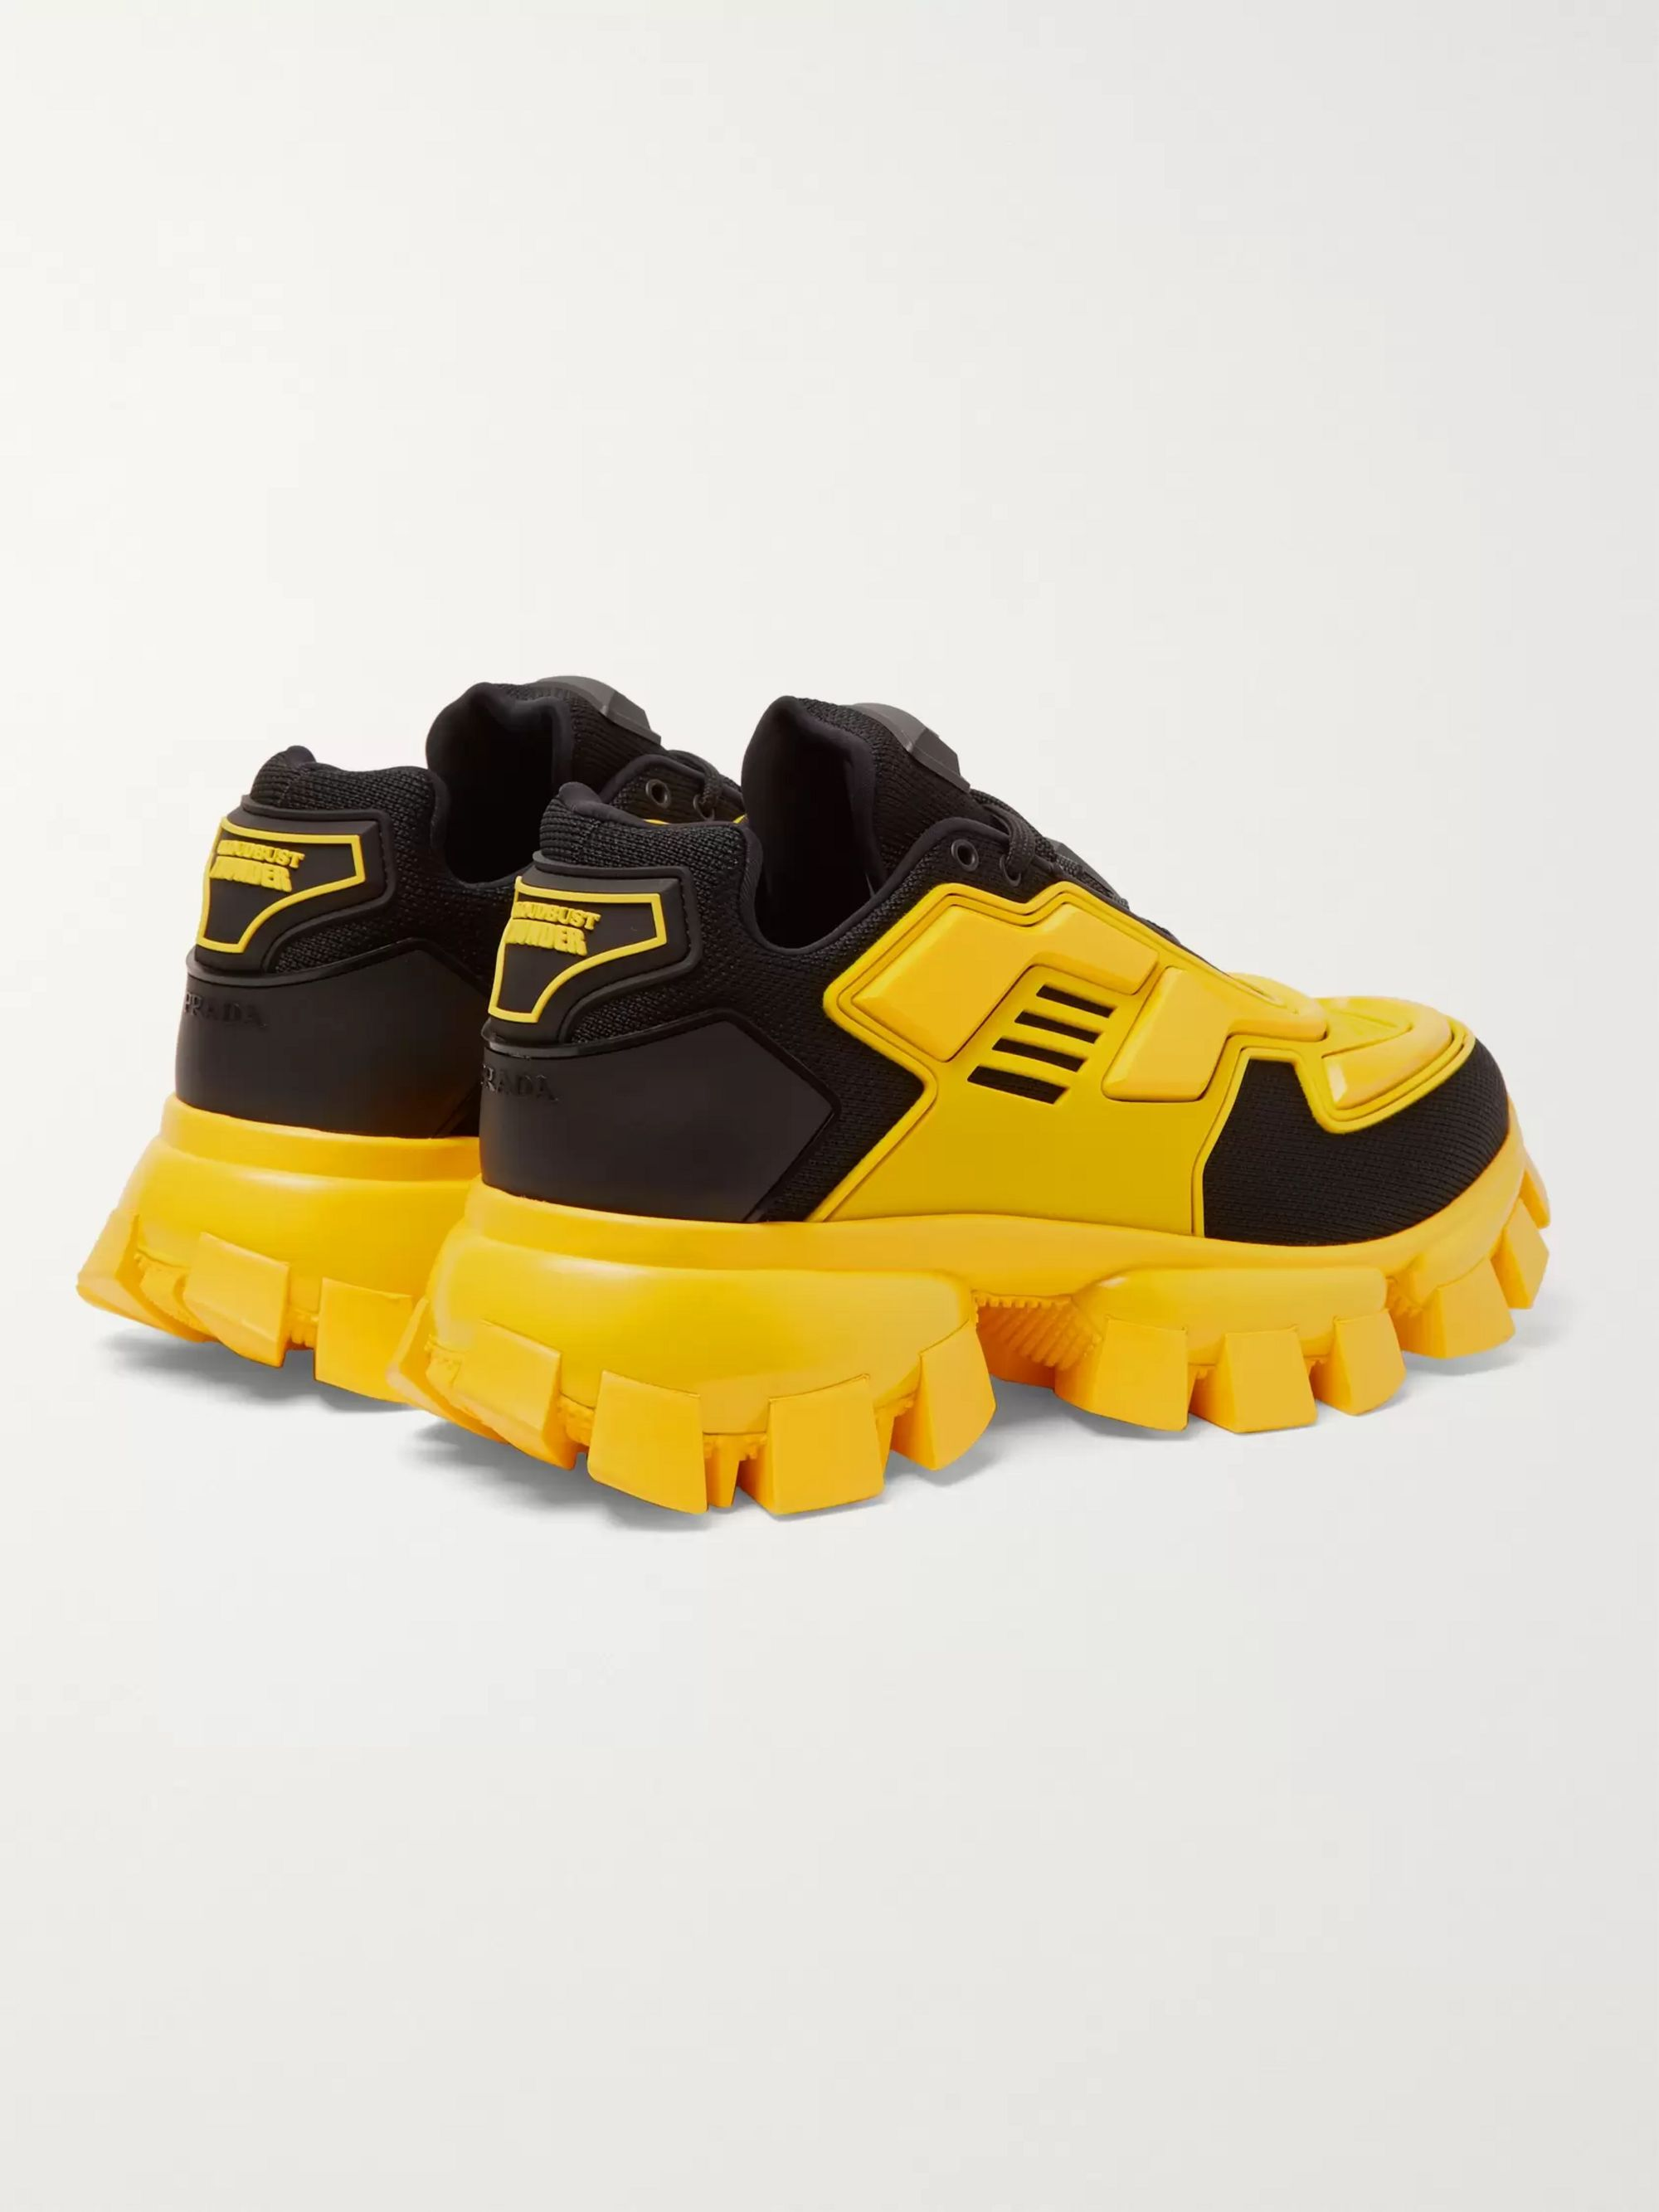 Prada Cloudbust Thunder Rubber and Mesh Sneakers